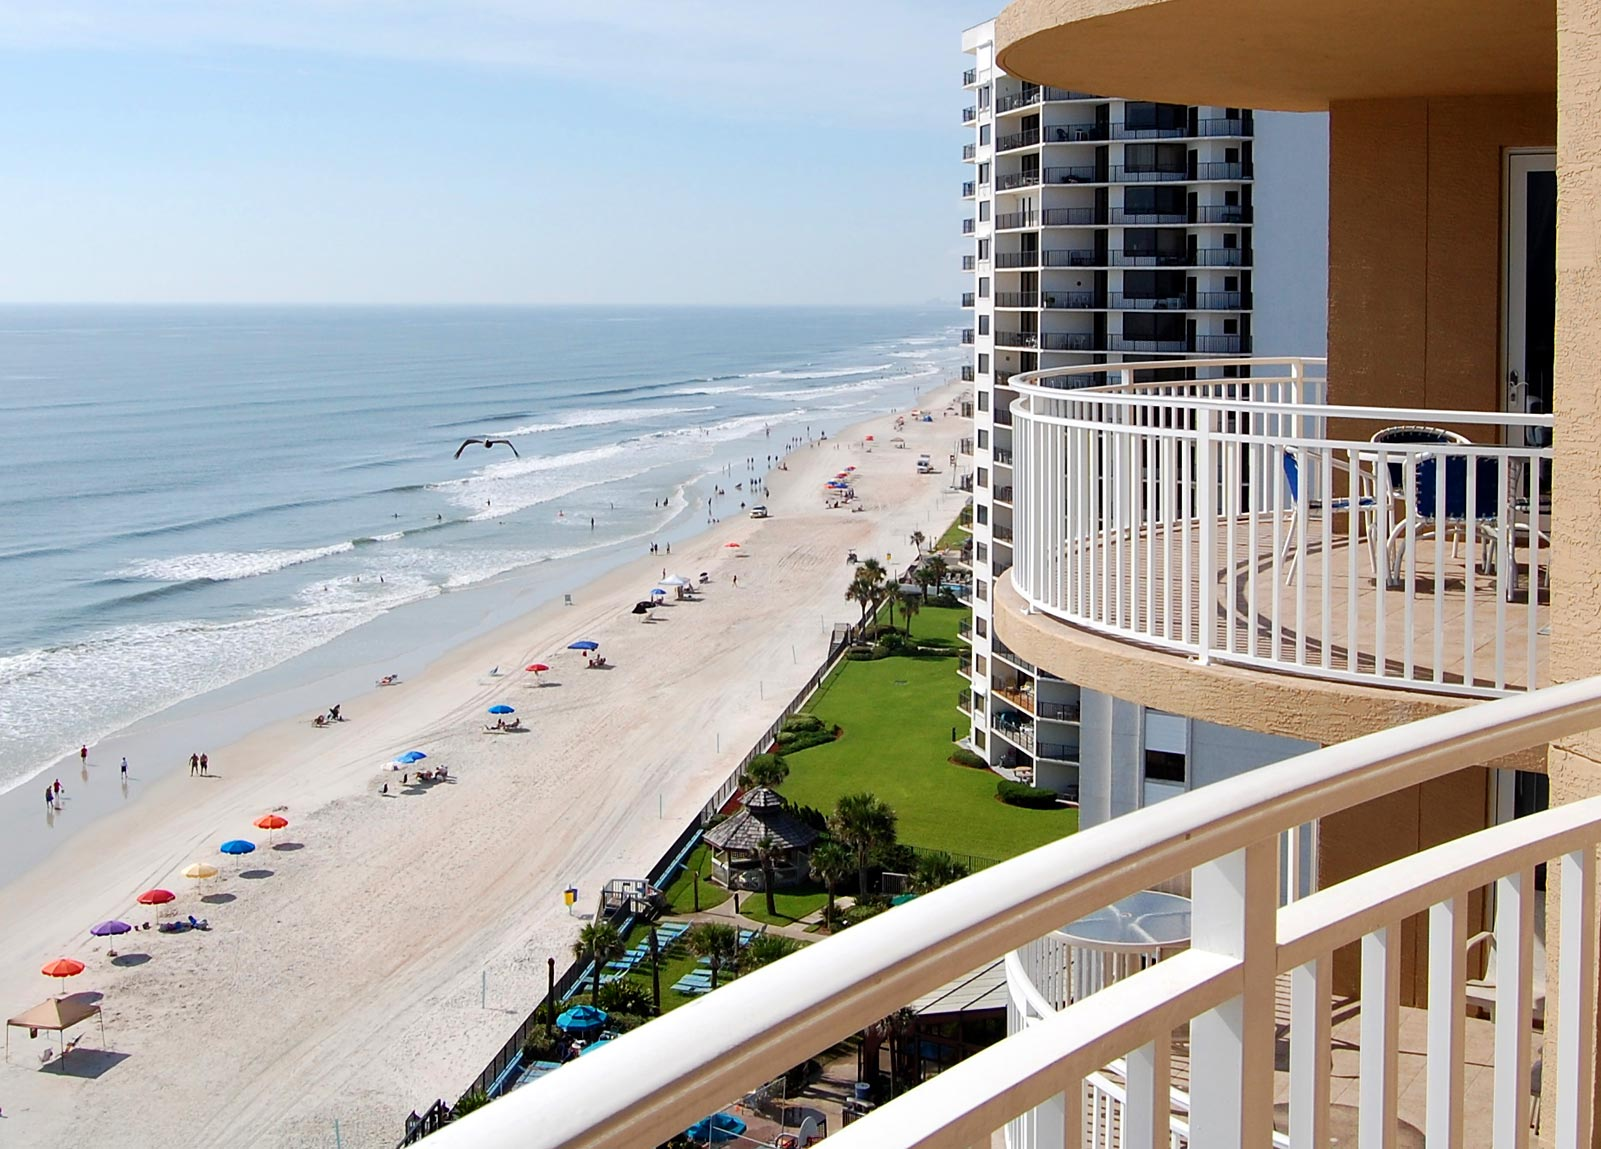 daytona beach hotels daytona beach hotels on the beach. Black Bedroom Furniture Sets. Home Design Ideas